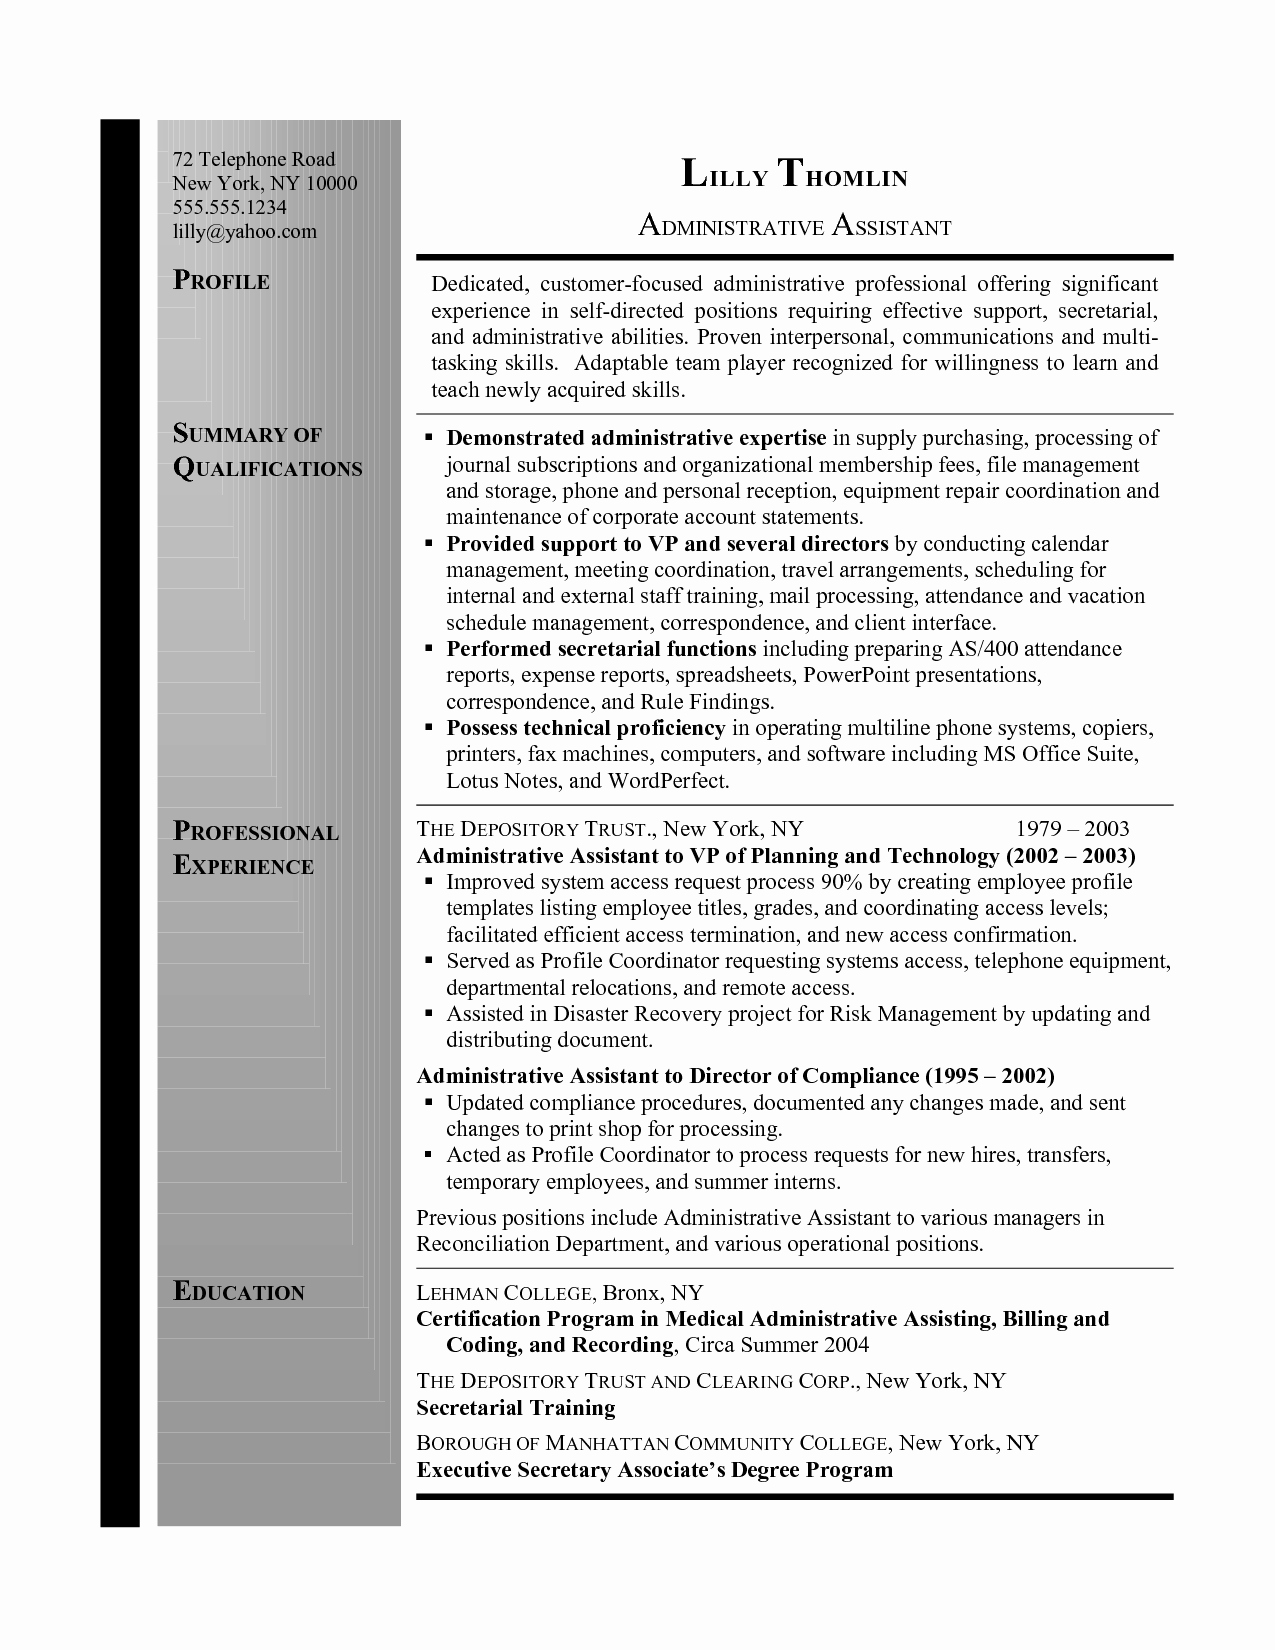 Fice assistant Resume Summary Resume Ideas